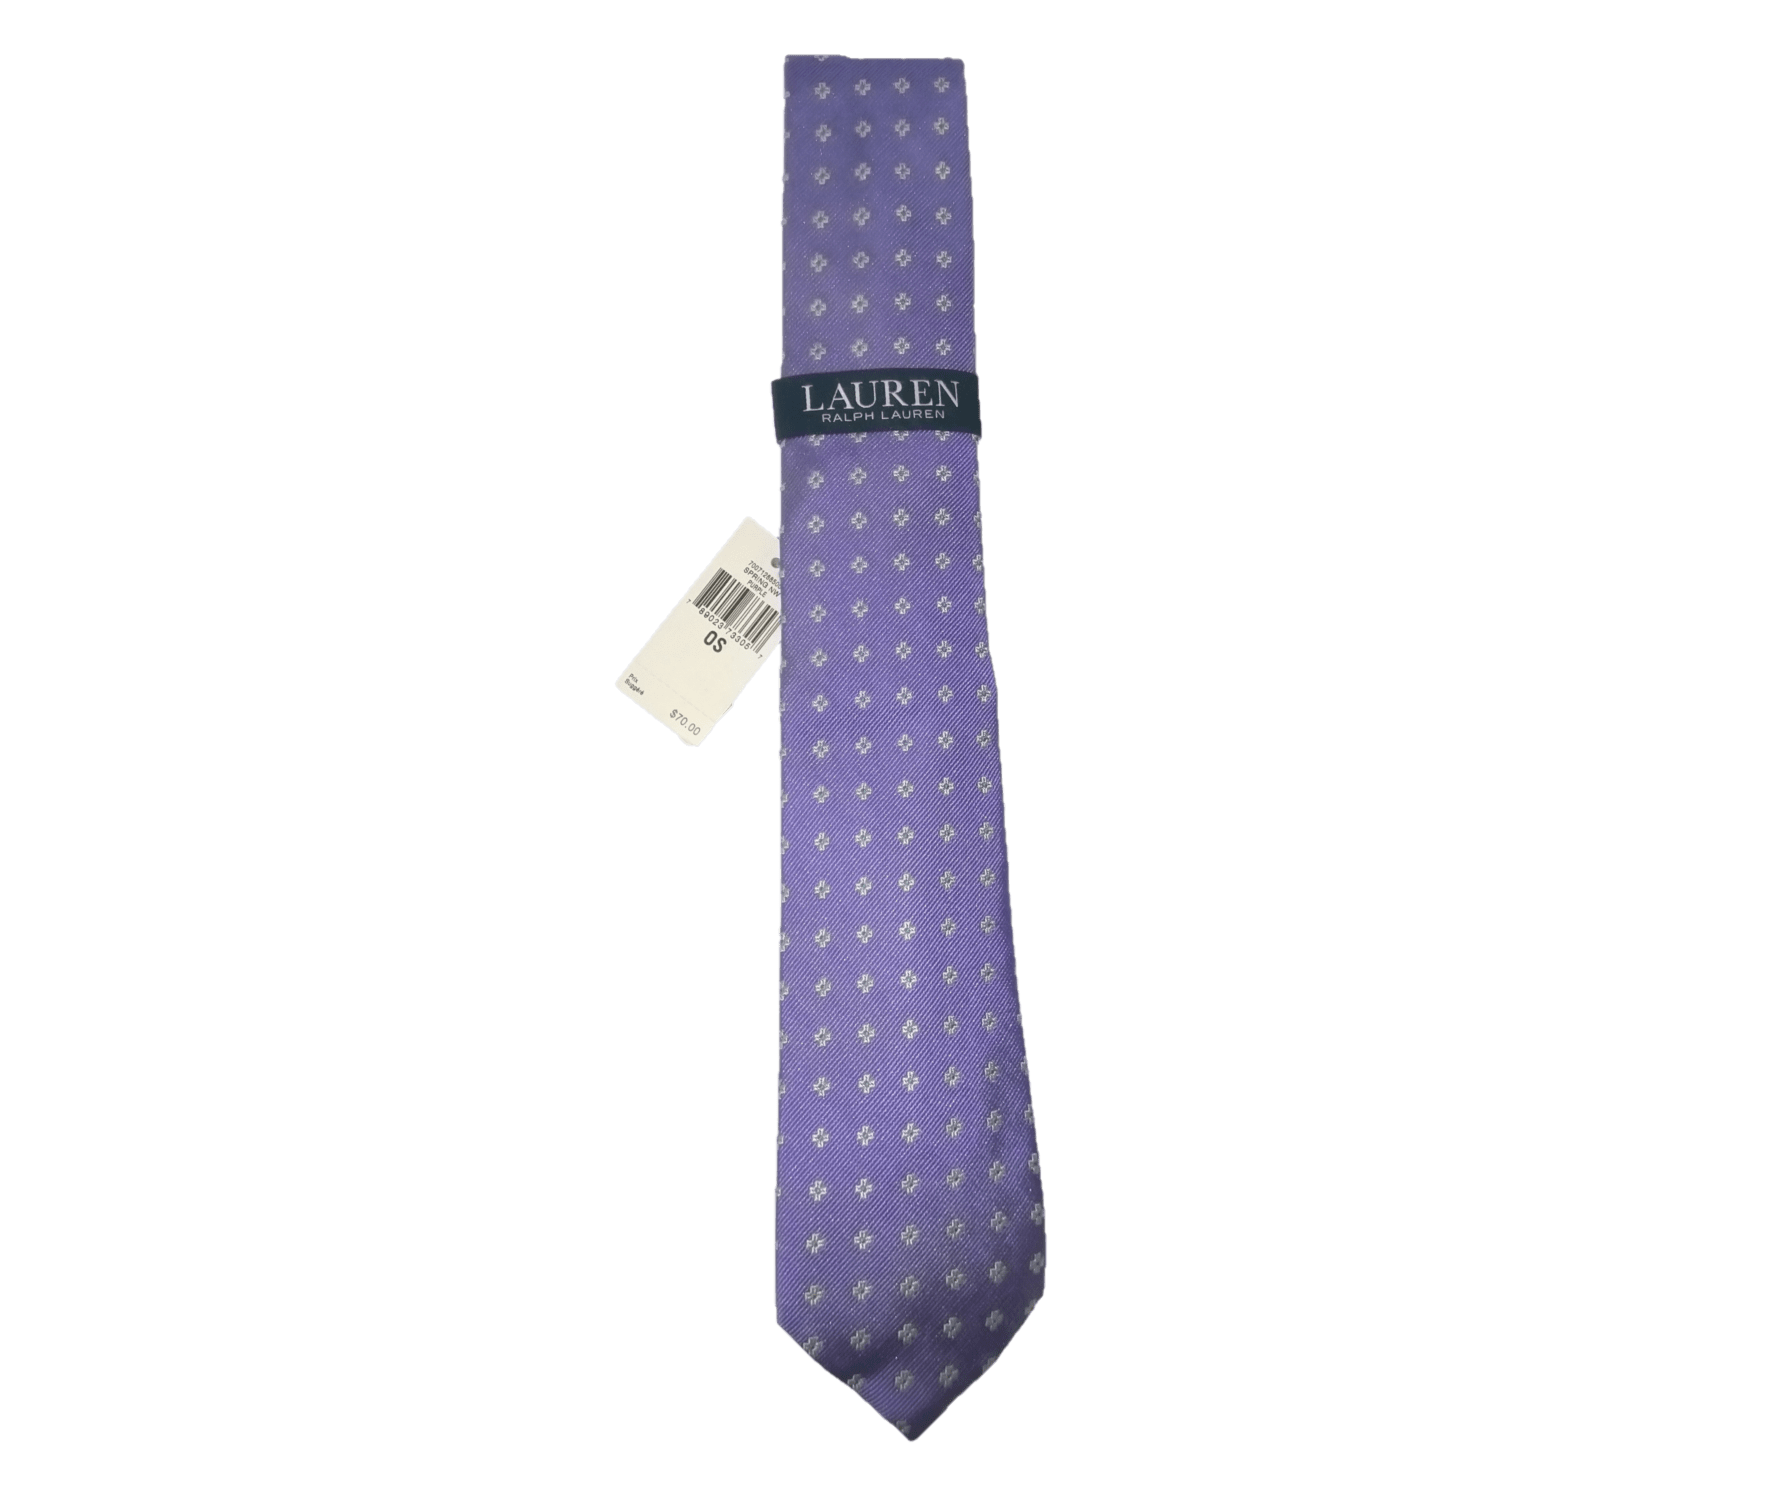 Ralph Lauren Spring Purple Label Necktie, Front Folded